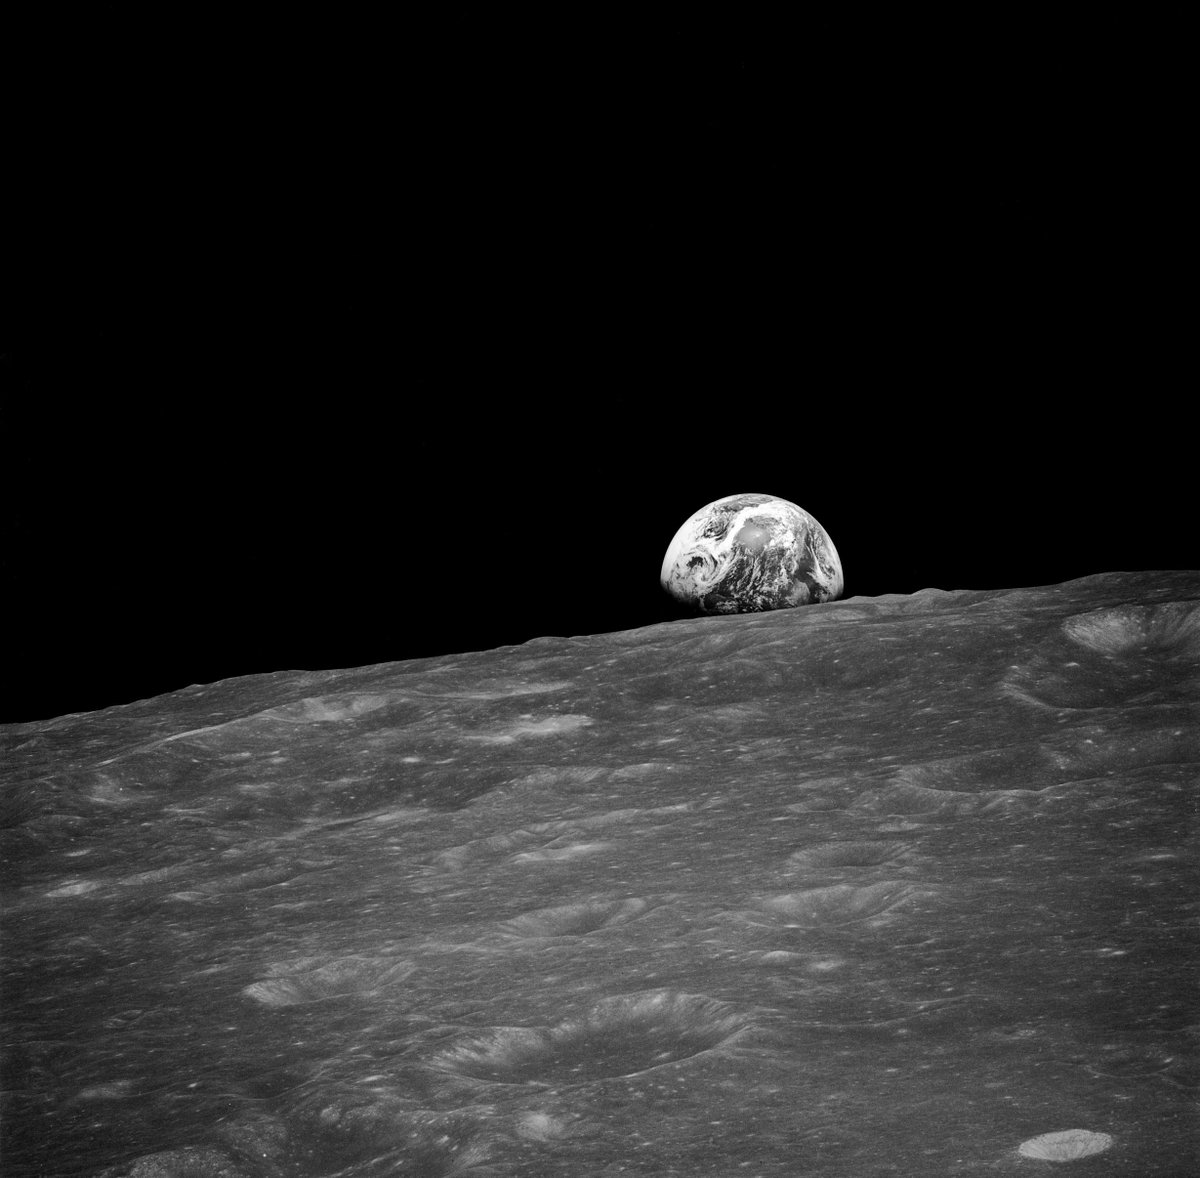 #Apollo 8 is known for the iconic Earthrise photo. But did you know that that image wasn't the first? Just minutes before taking the color photo we know today, Anders took this with a black and white camera. #Apollo88#Apollo50 50